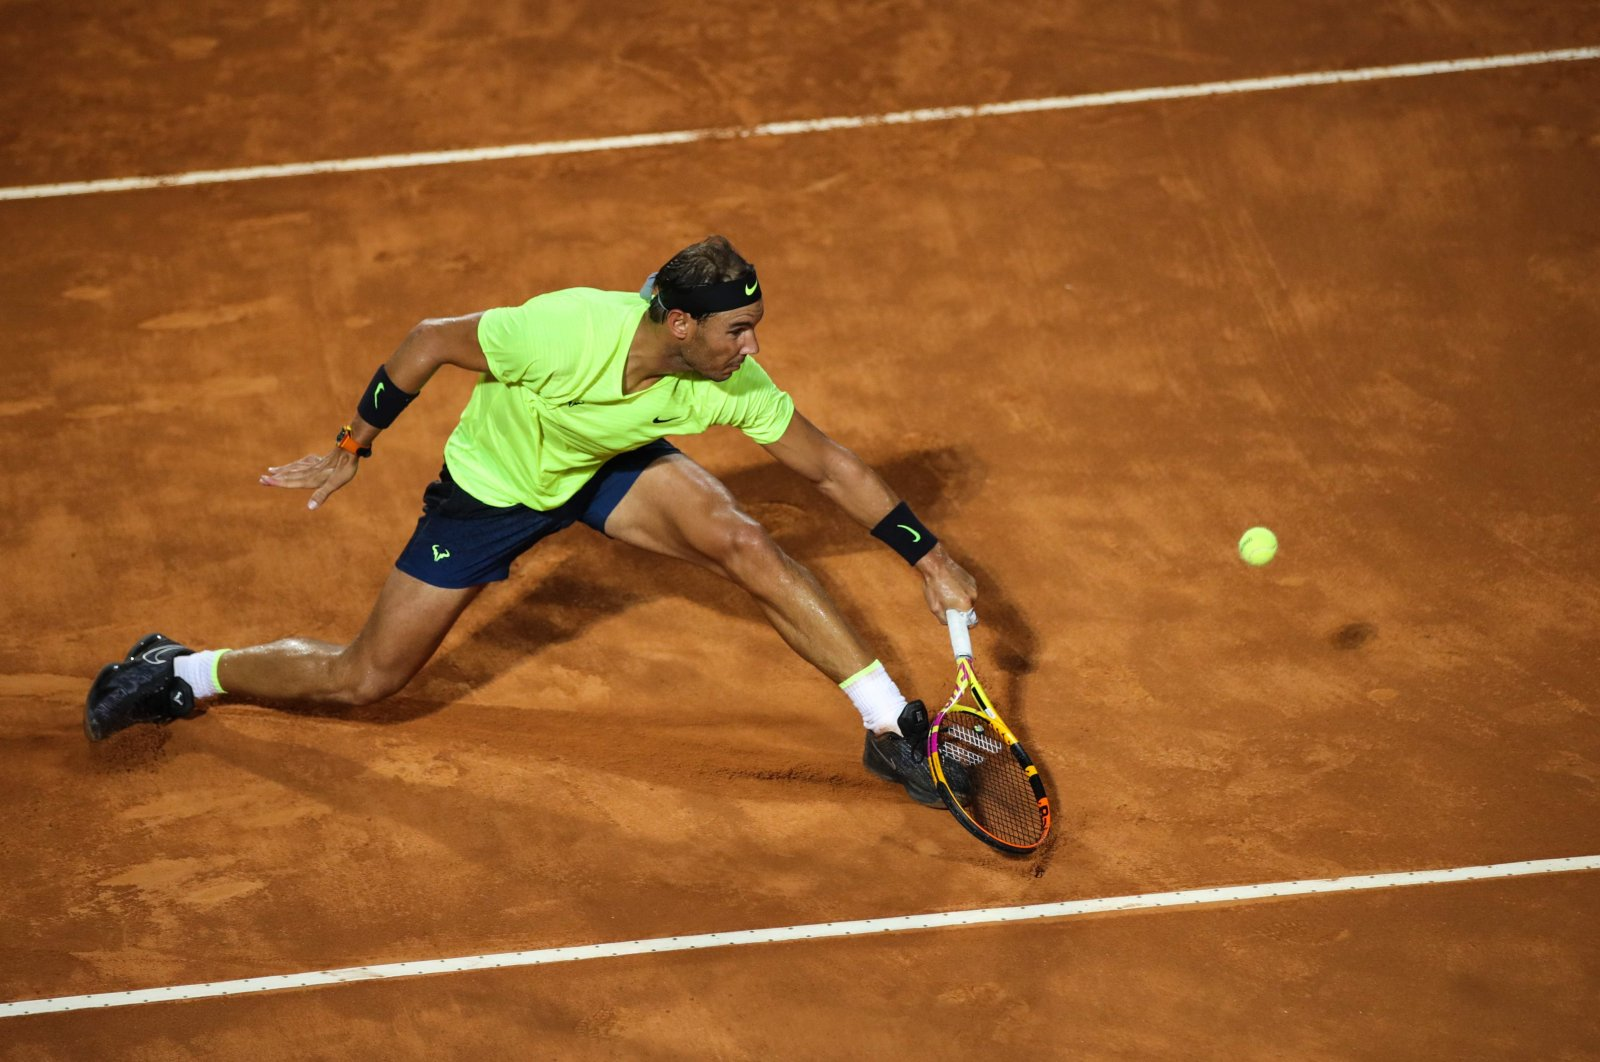 Rafael Nadal plays a backhand during an Italian Open match in Rome, Italy, Sept. 19, 2020. (AFP Photo)